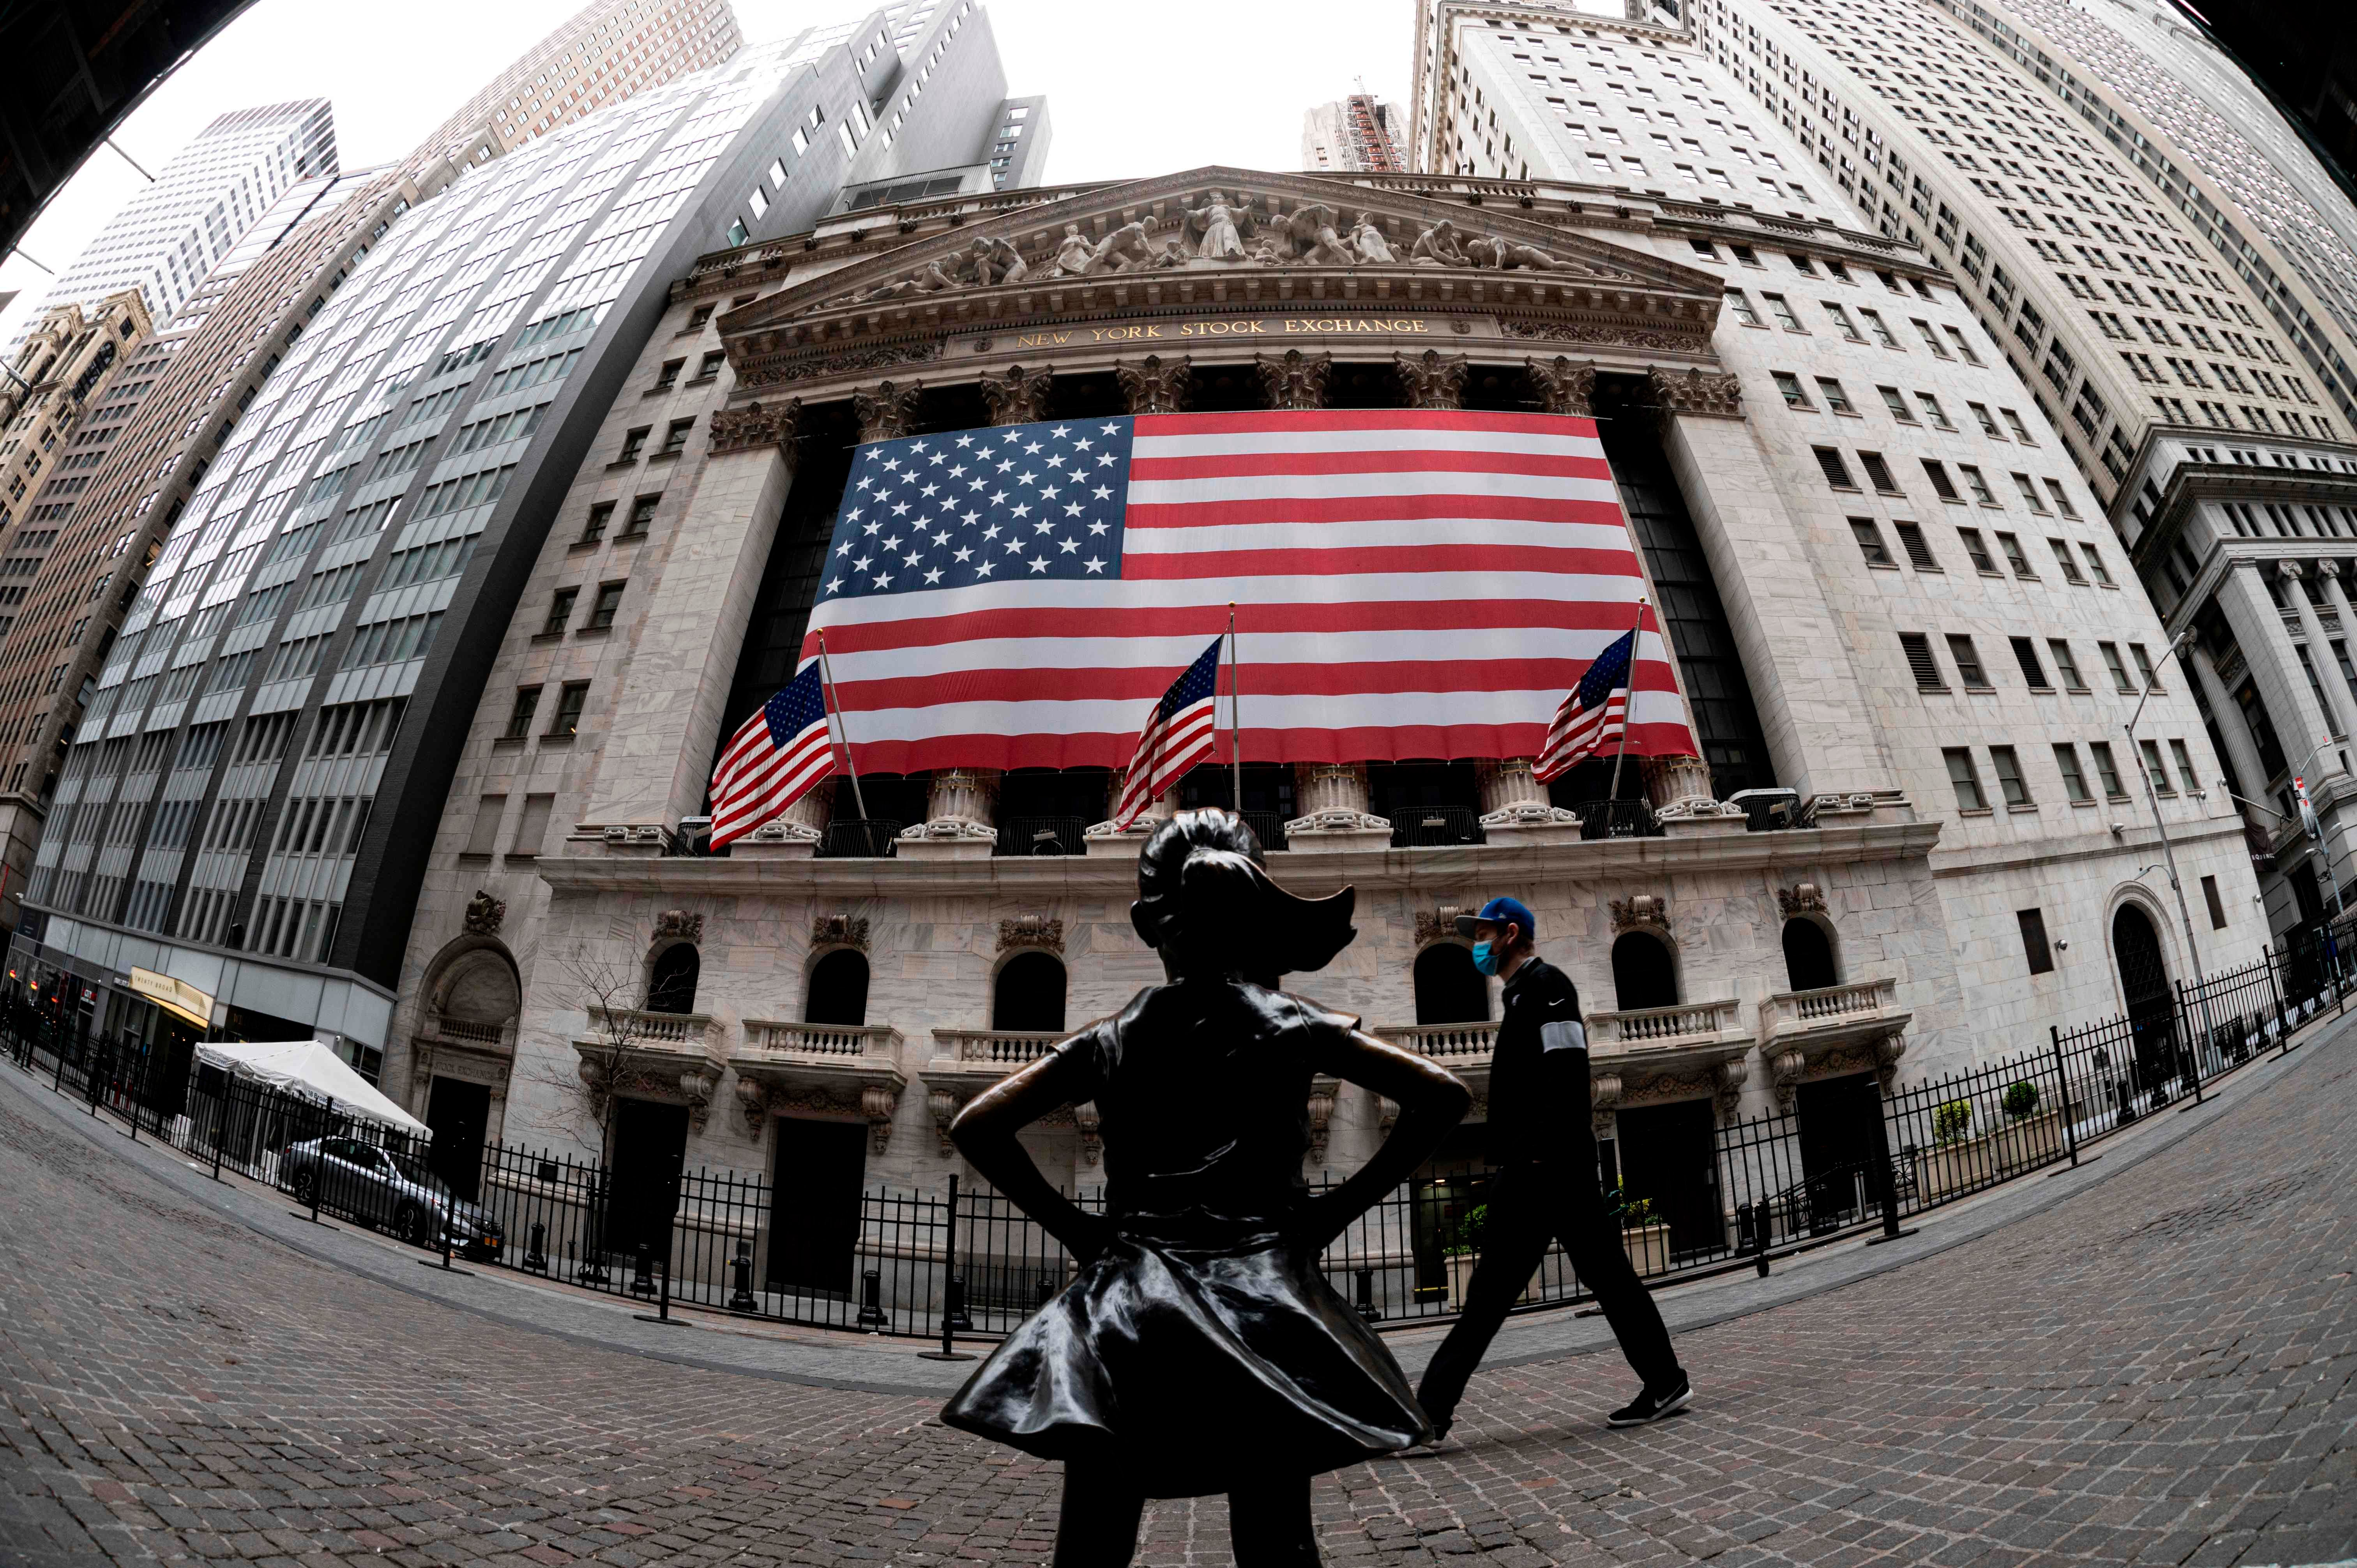 Dow sheds 500 points on fears of contagion from China real estate